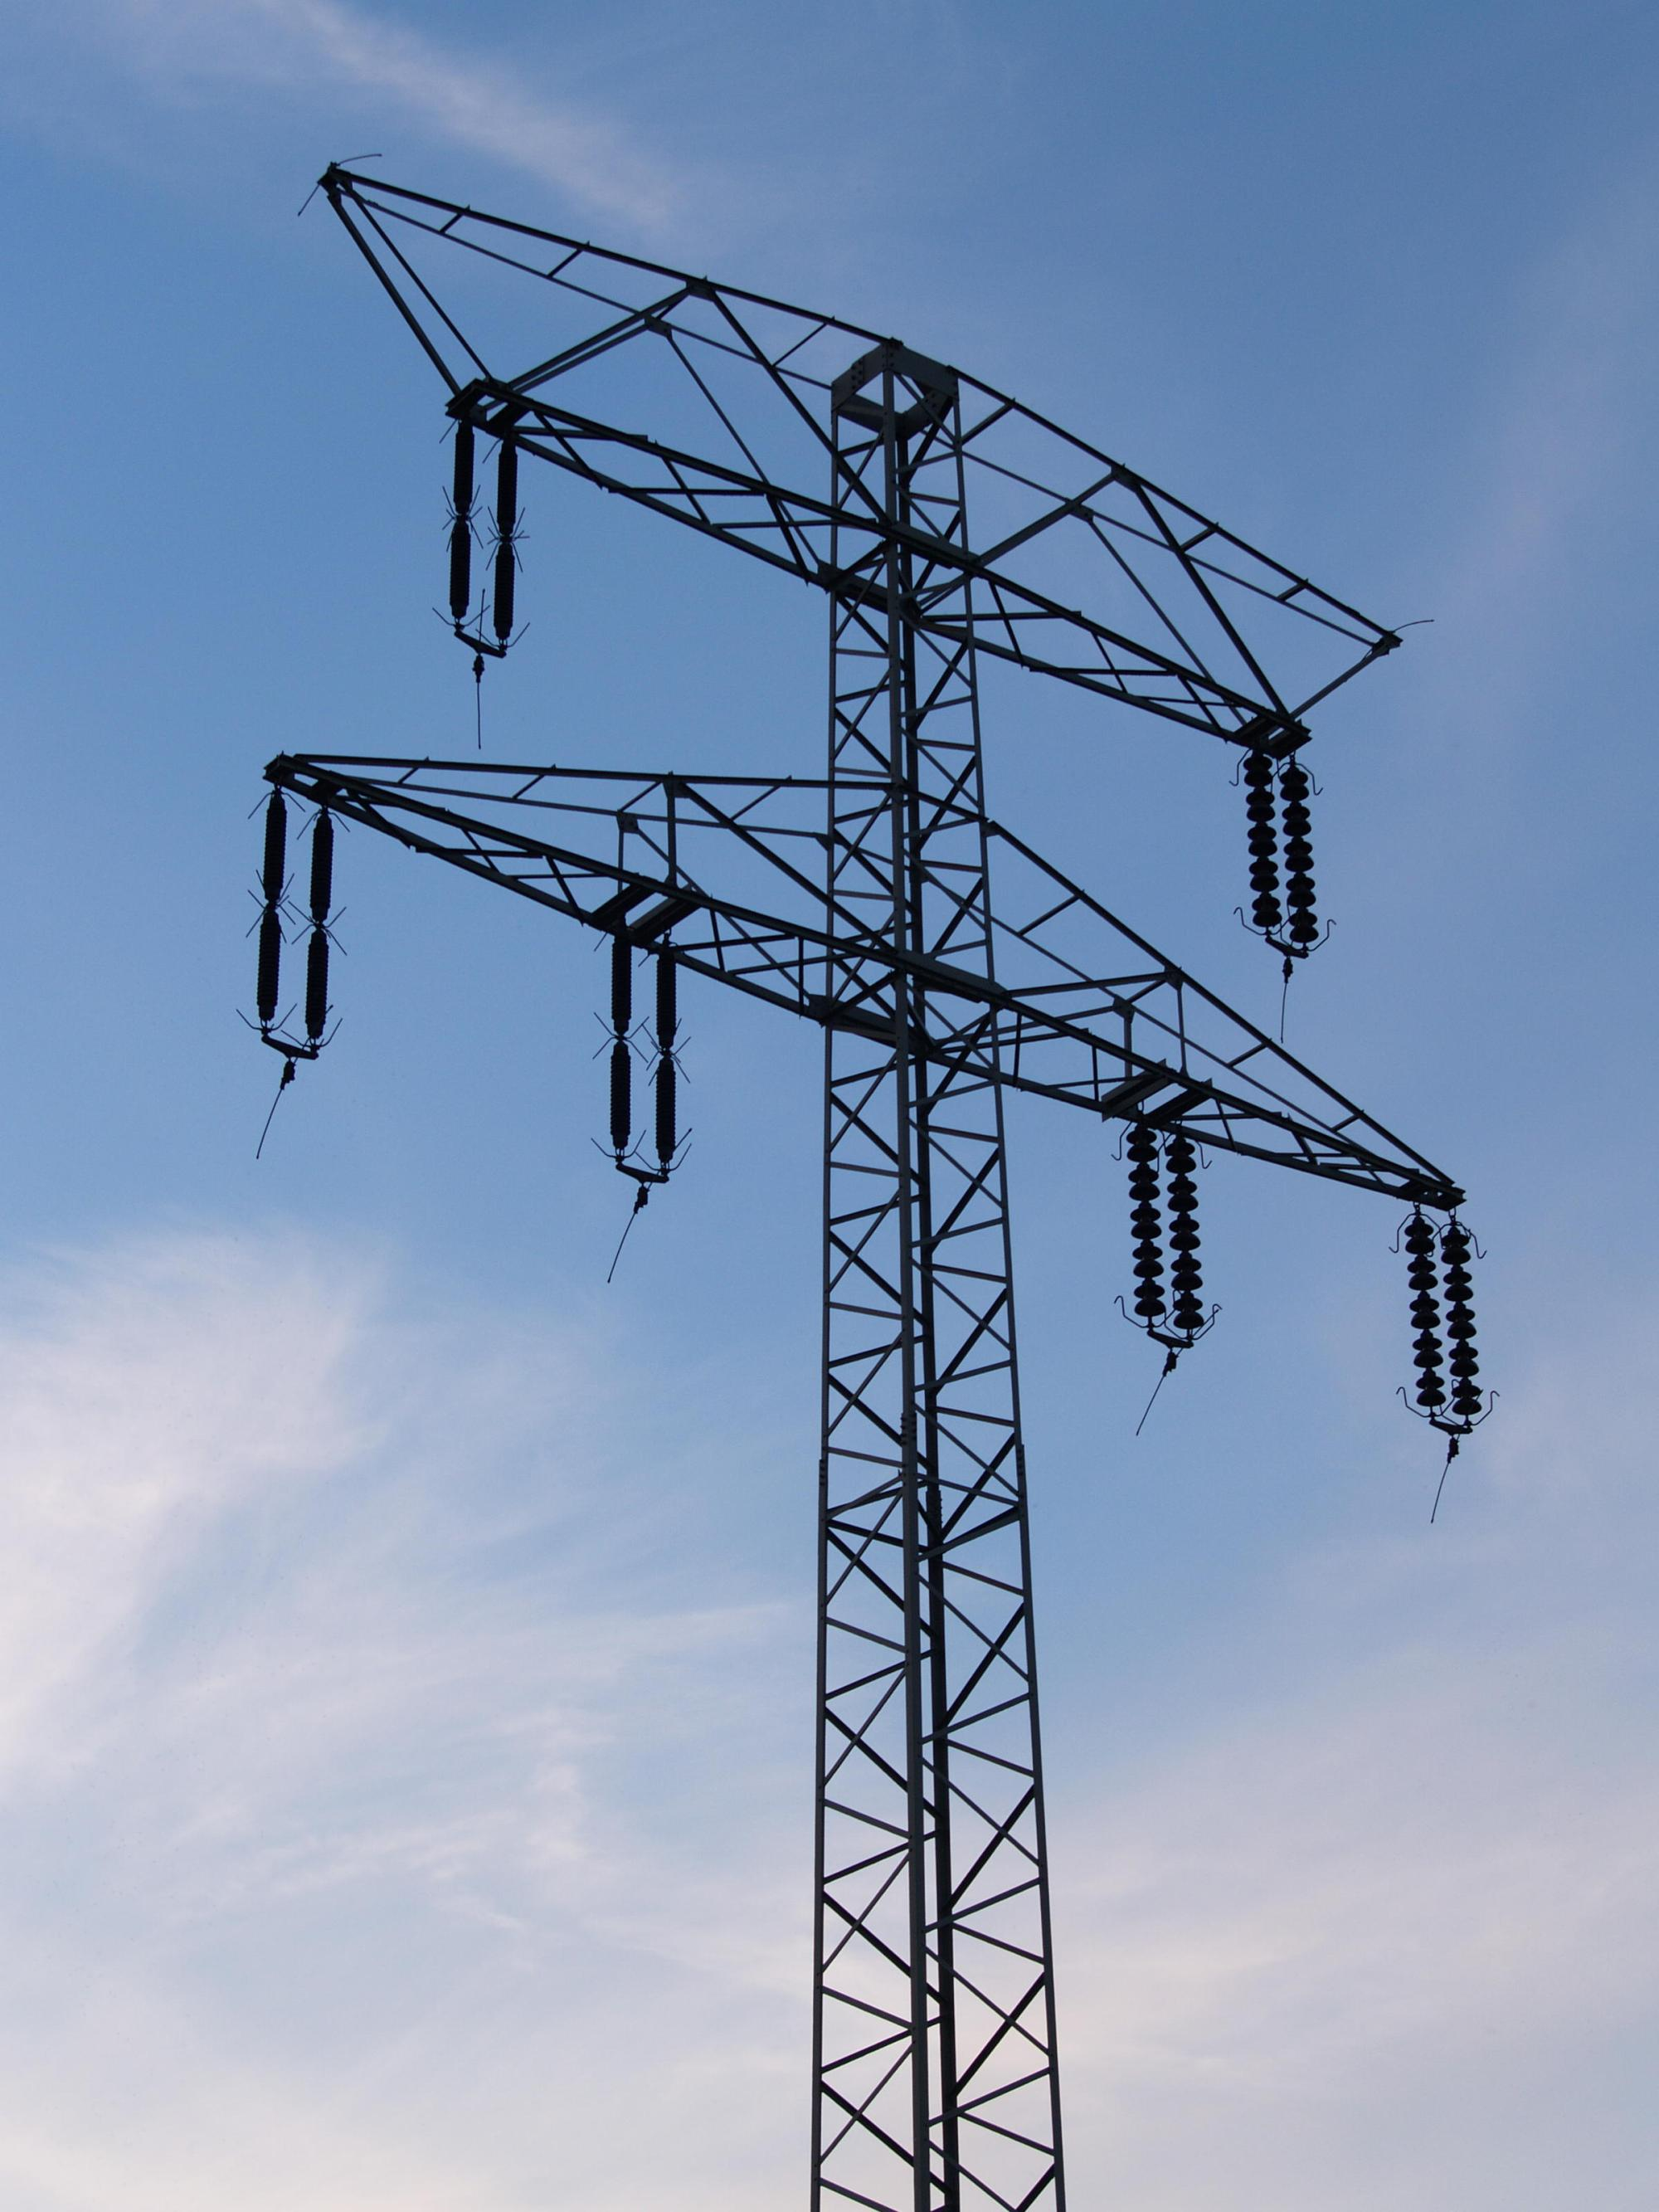 hight resolution of parts of kanawha and roane counties will see new power lines and electrical upgrades under a 75 million electric grid expansion plan by energy companies